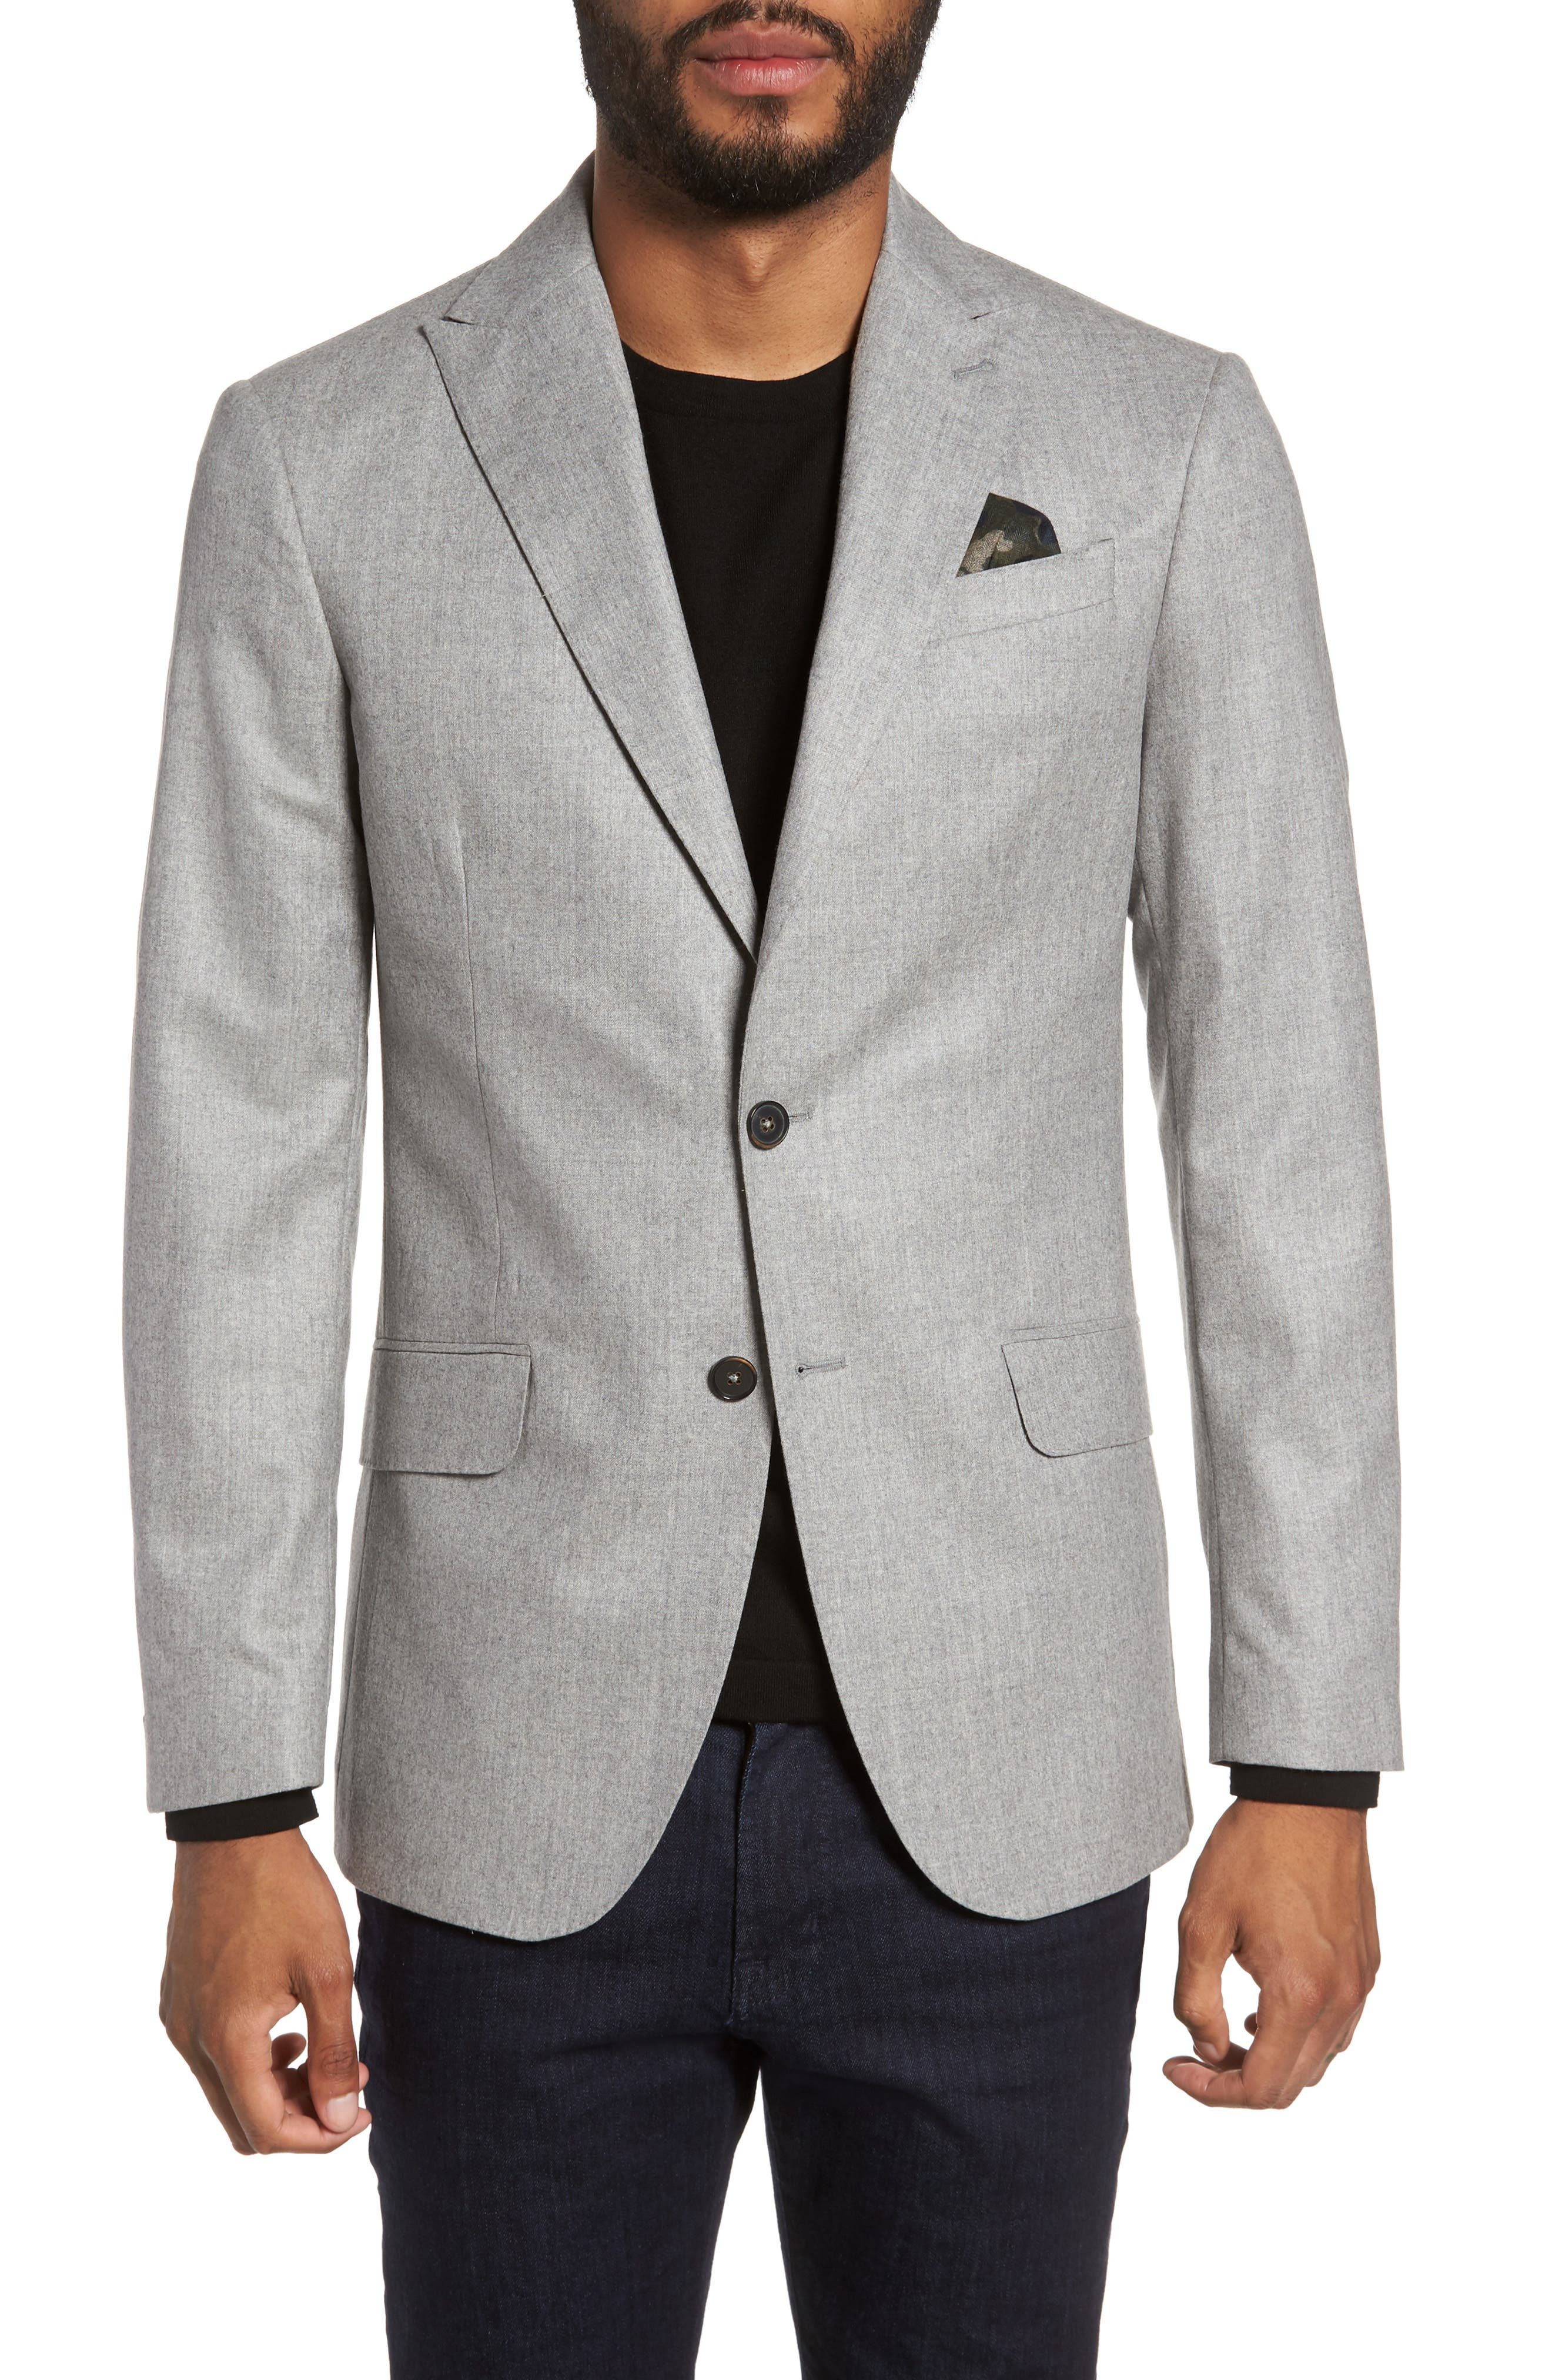 Betong Trim Fit Wool Blazer,                         Main,                         color, Silver Filigree